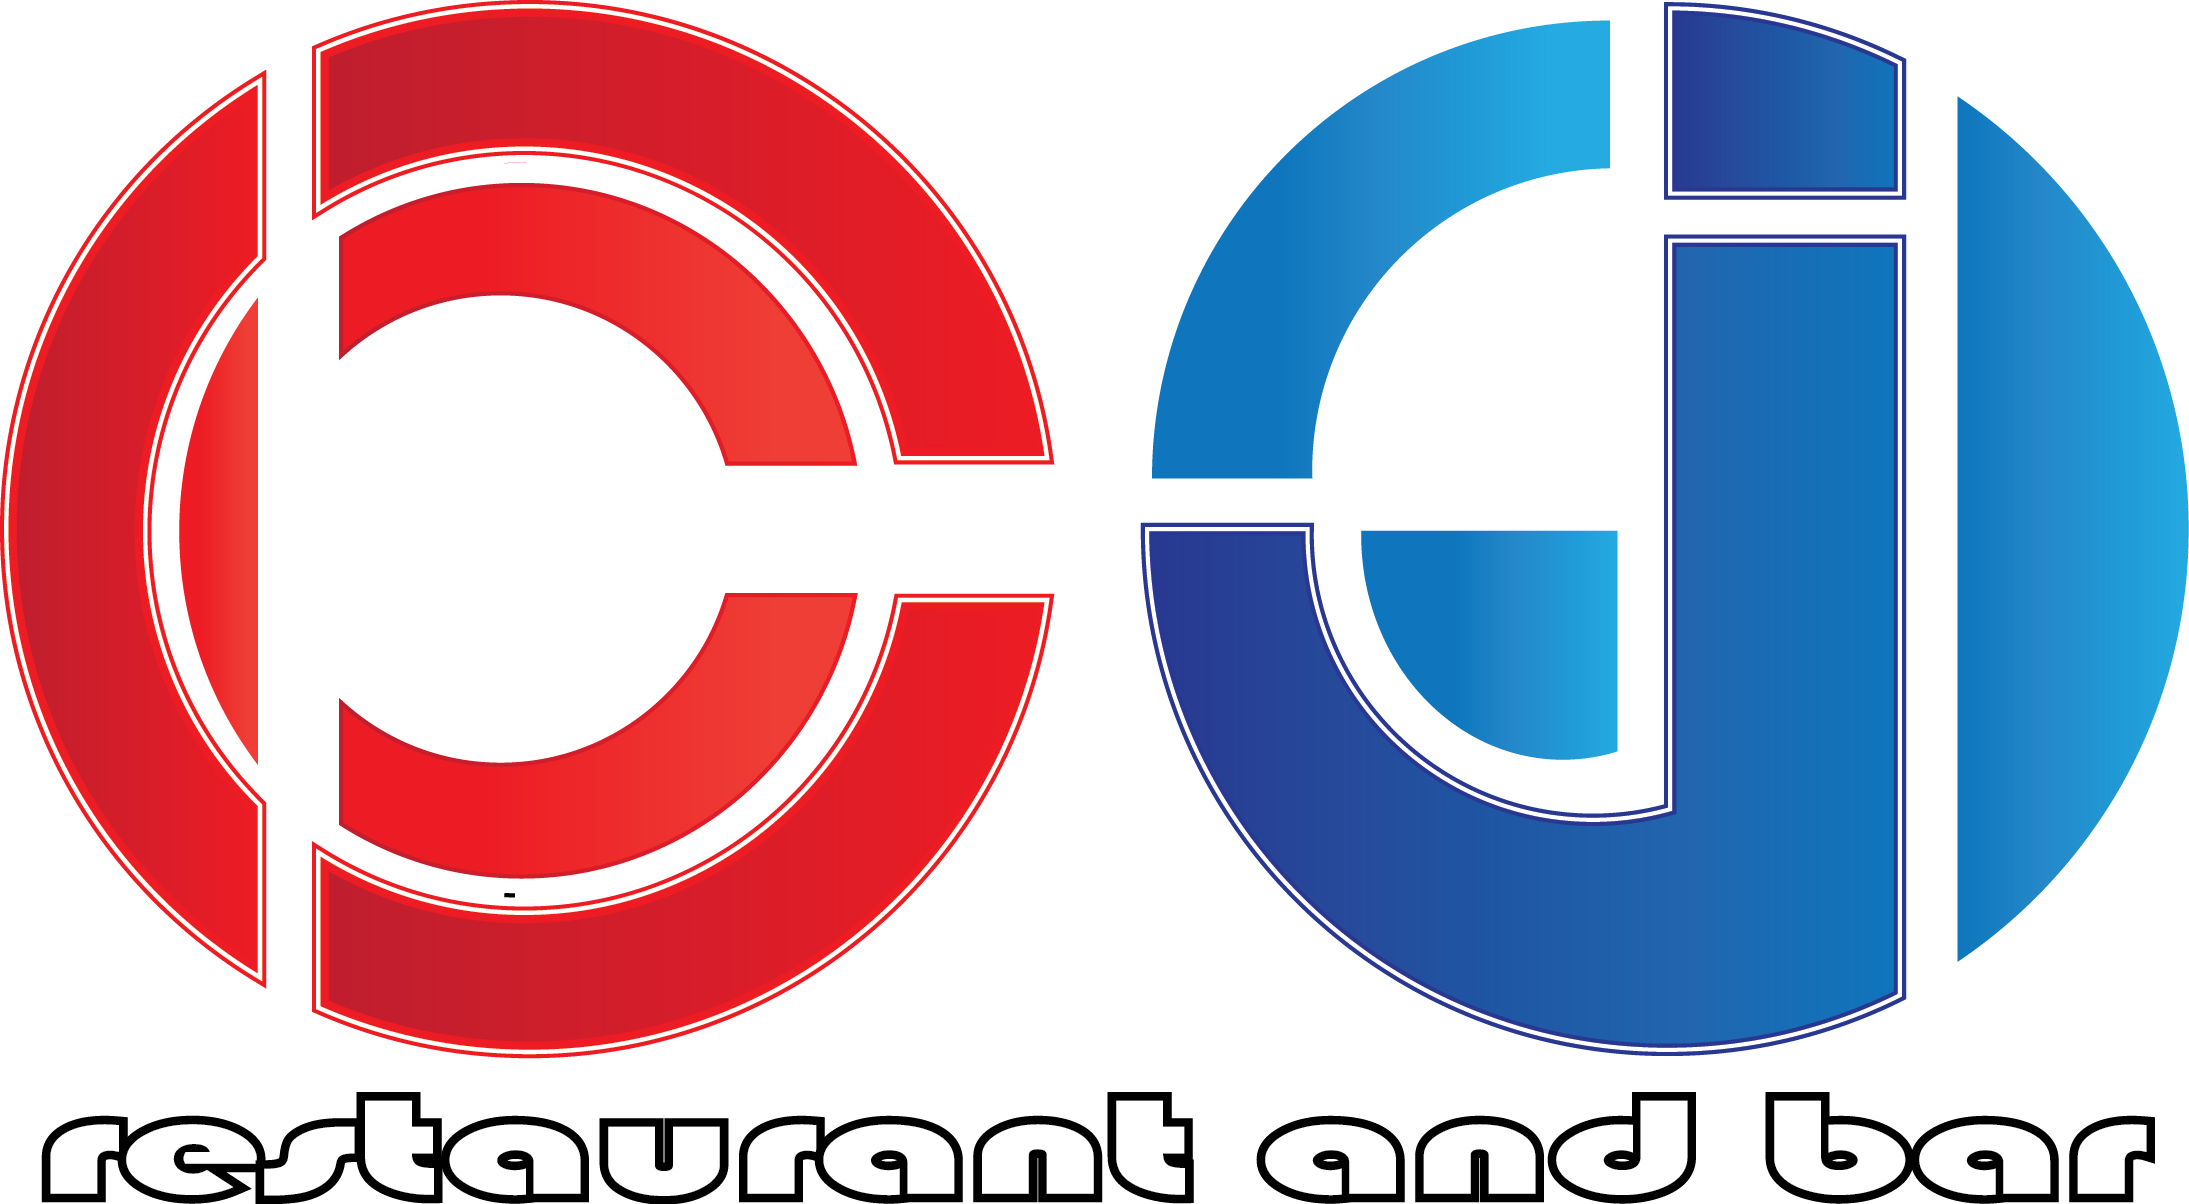 Logo Design by Chandrodayan Mavadian - Entry No. 115 in the Logo Design Contest Inspiring Logo Design for Cj's.